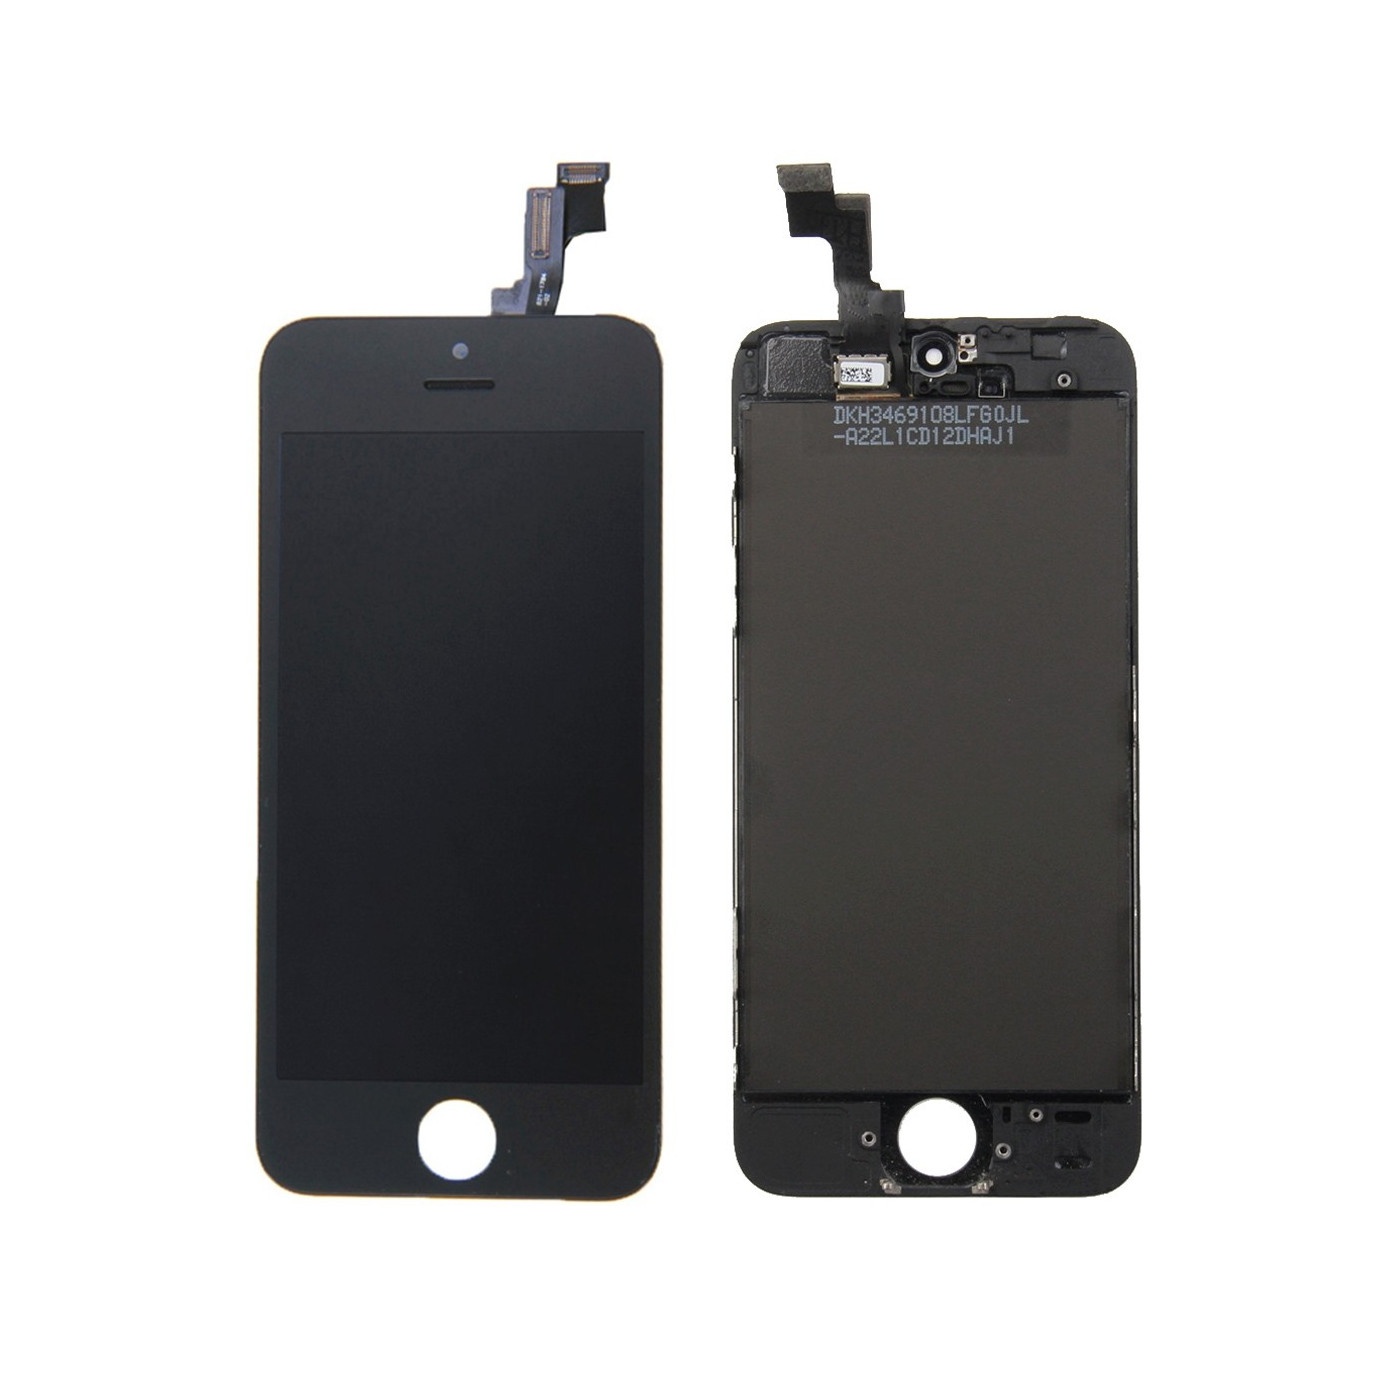 Pantalla táctil + LCD Retina Display + Frame para Apple iPhone 5S Black Screen Glass